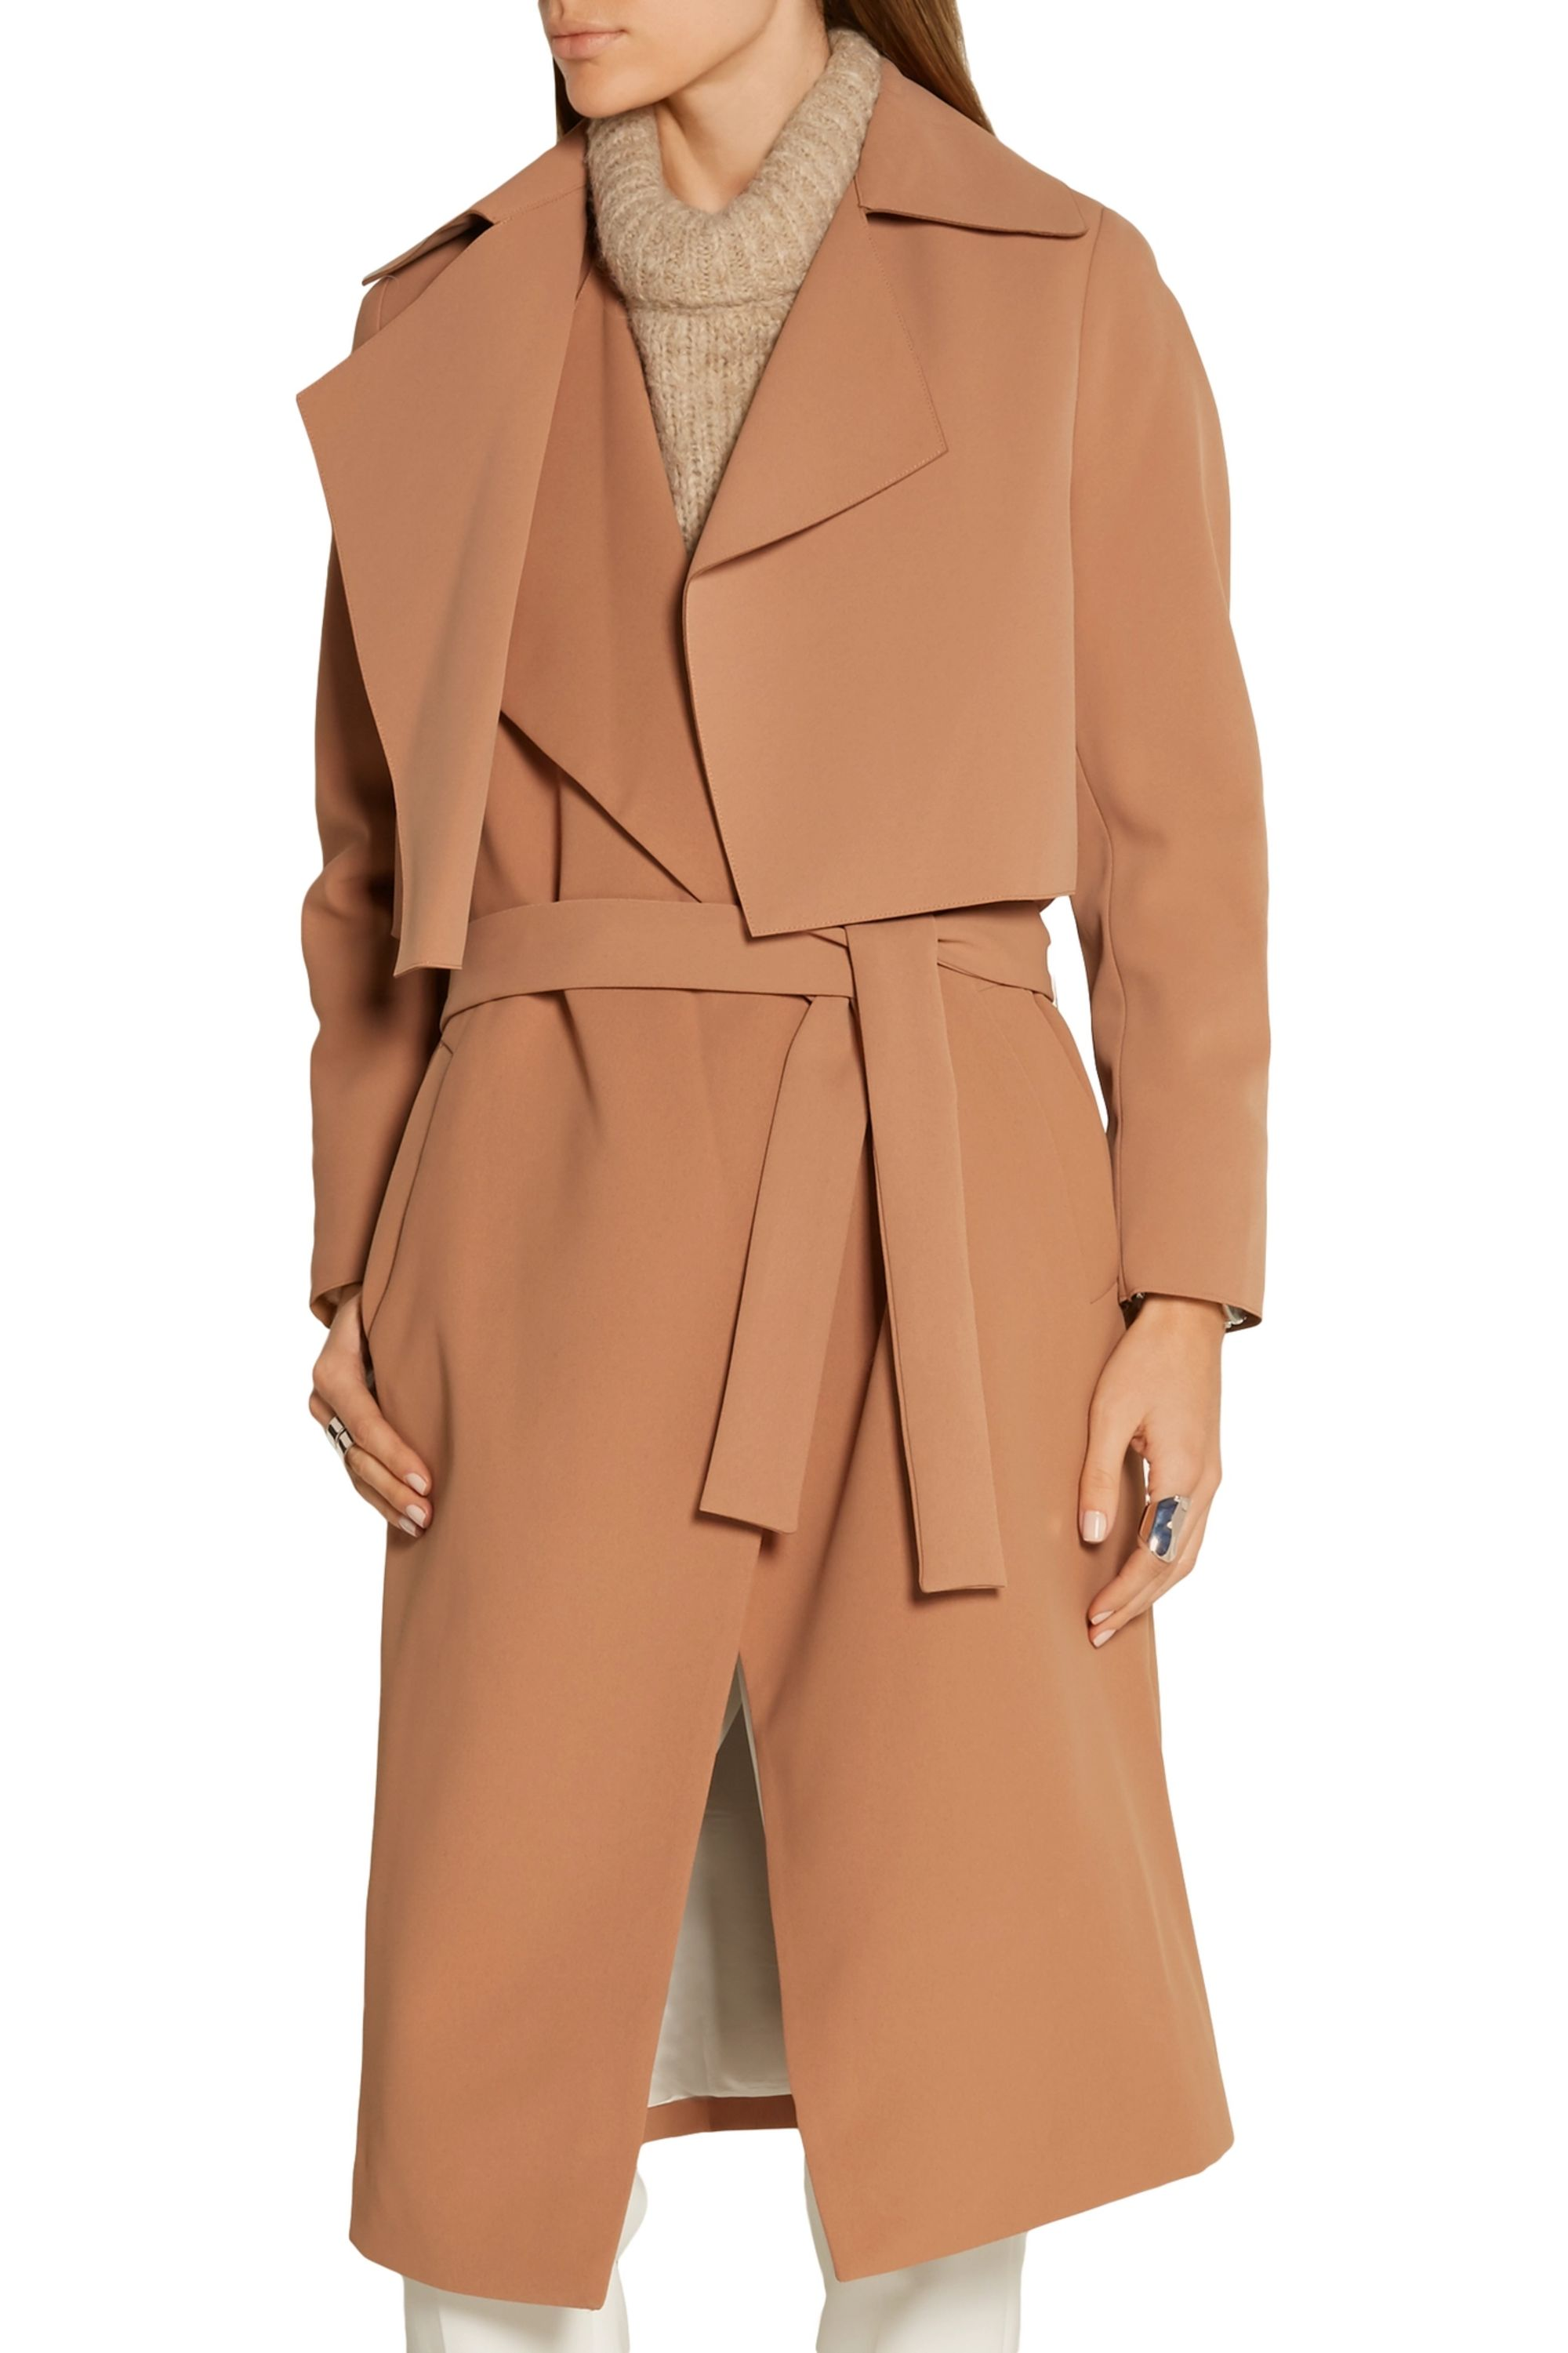 By Malene Birger Pasinios convertible crepe trench coat